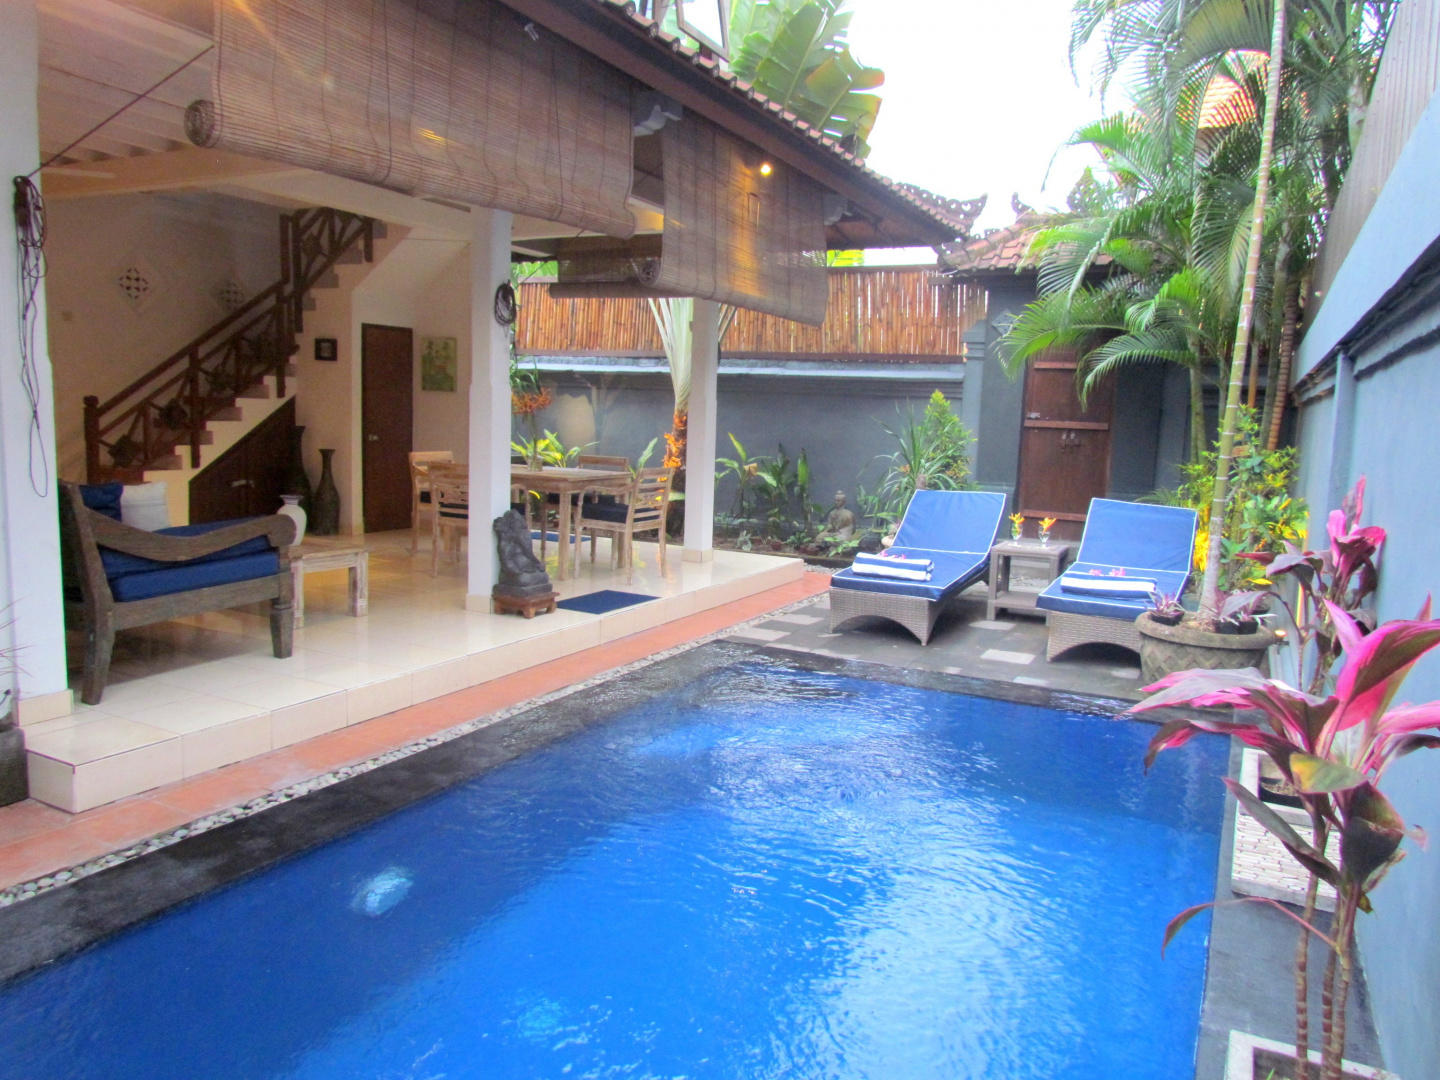 Spacious house in Kuta with Internet, Pool, Garden Slide-3